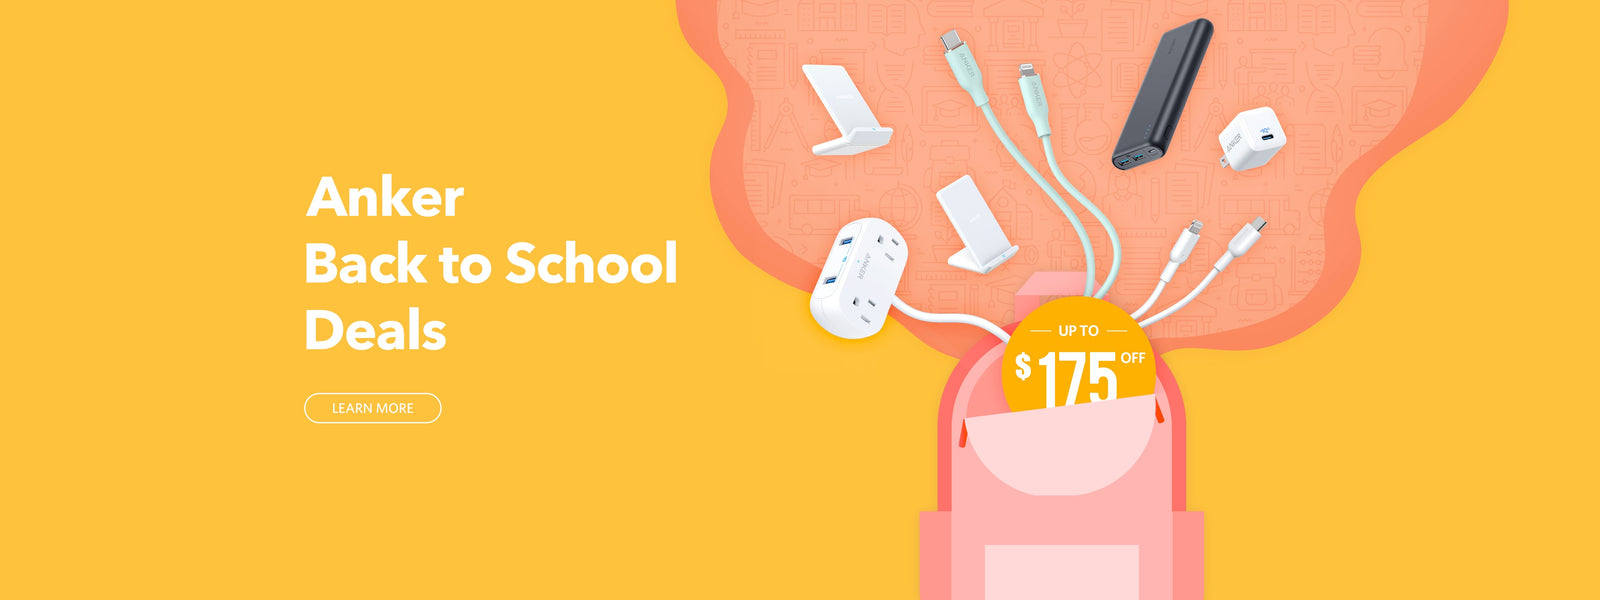 Anker Coupon Codes - Get Up to $120 discount on Adaptors and Cable